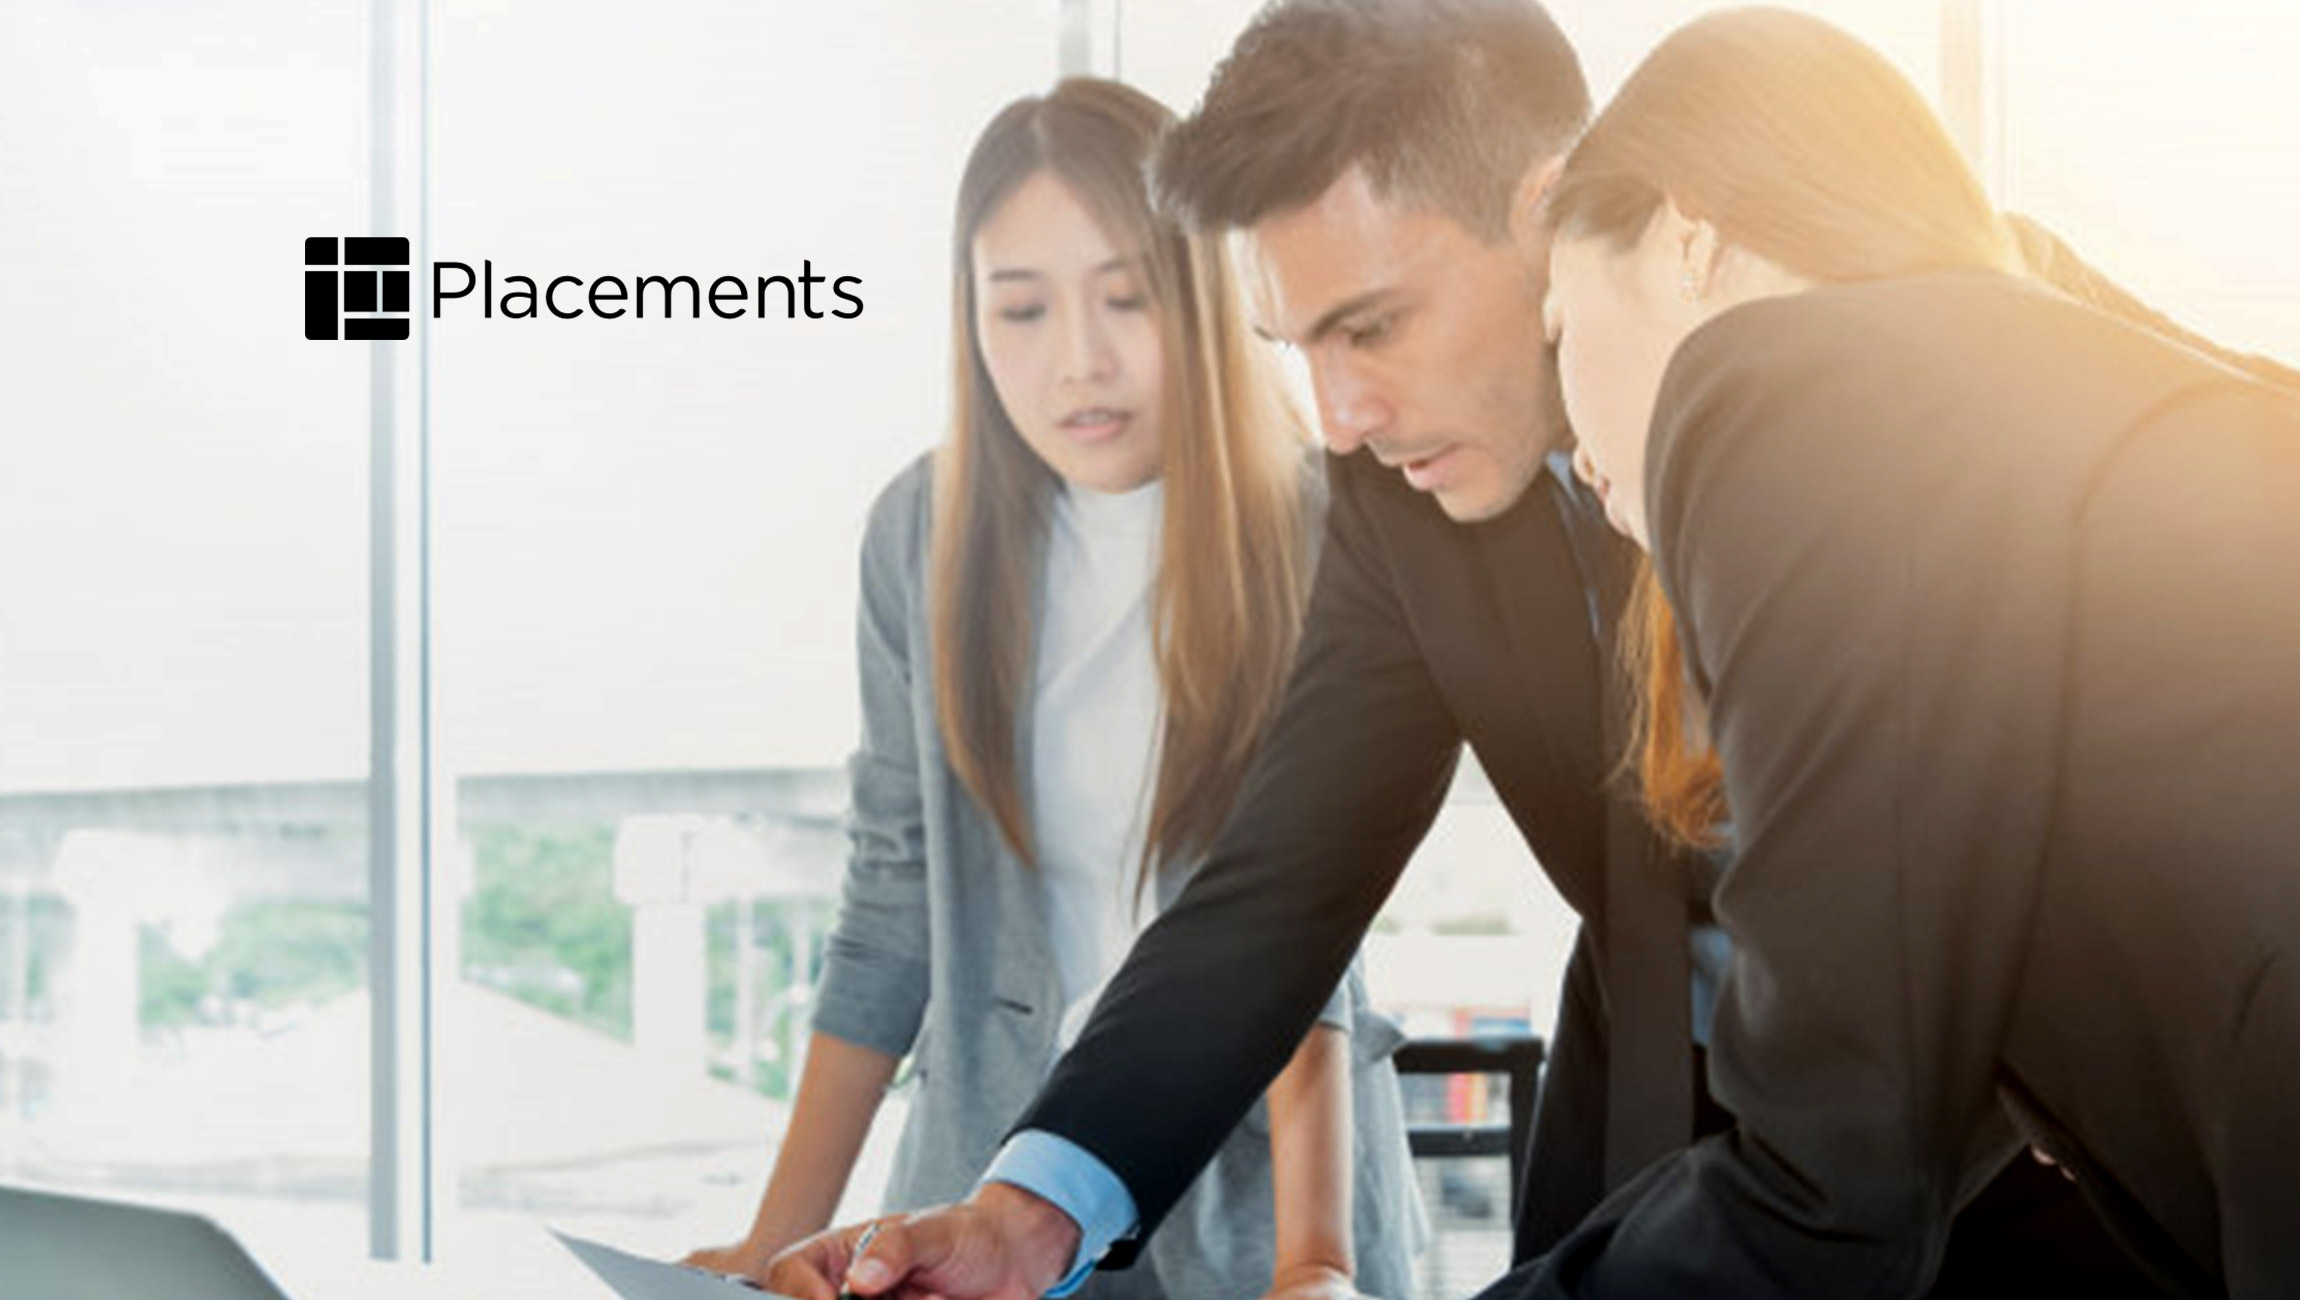 Placements.io launches first order management integration with Megaphone